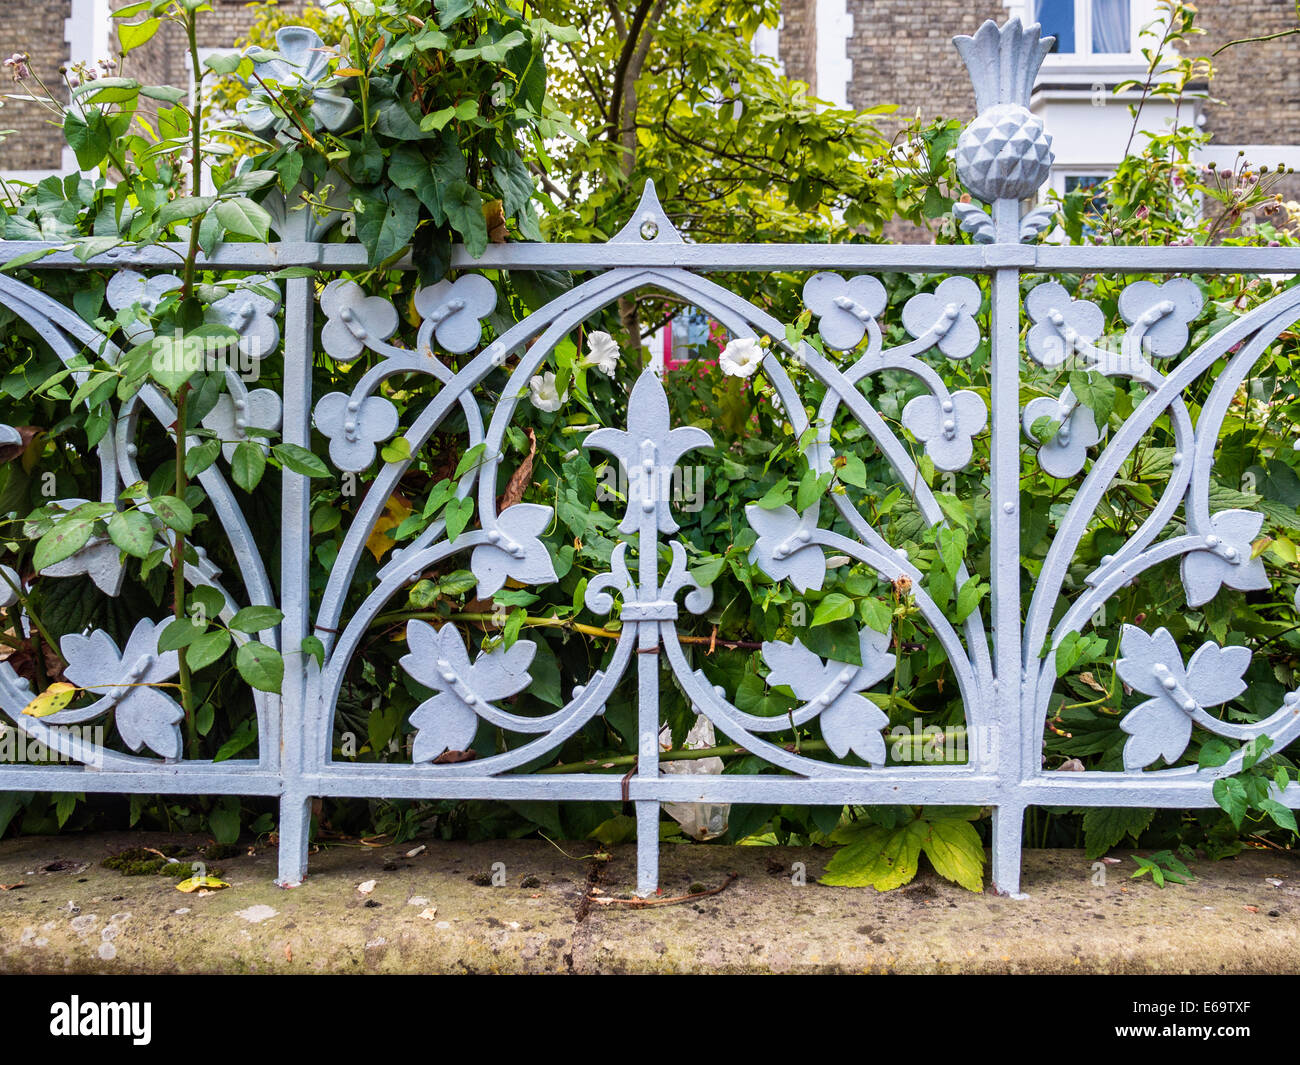 Decorative wrought iron metalwork fence with floral design around ...